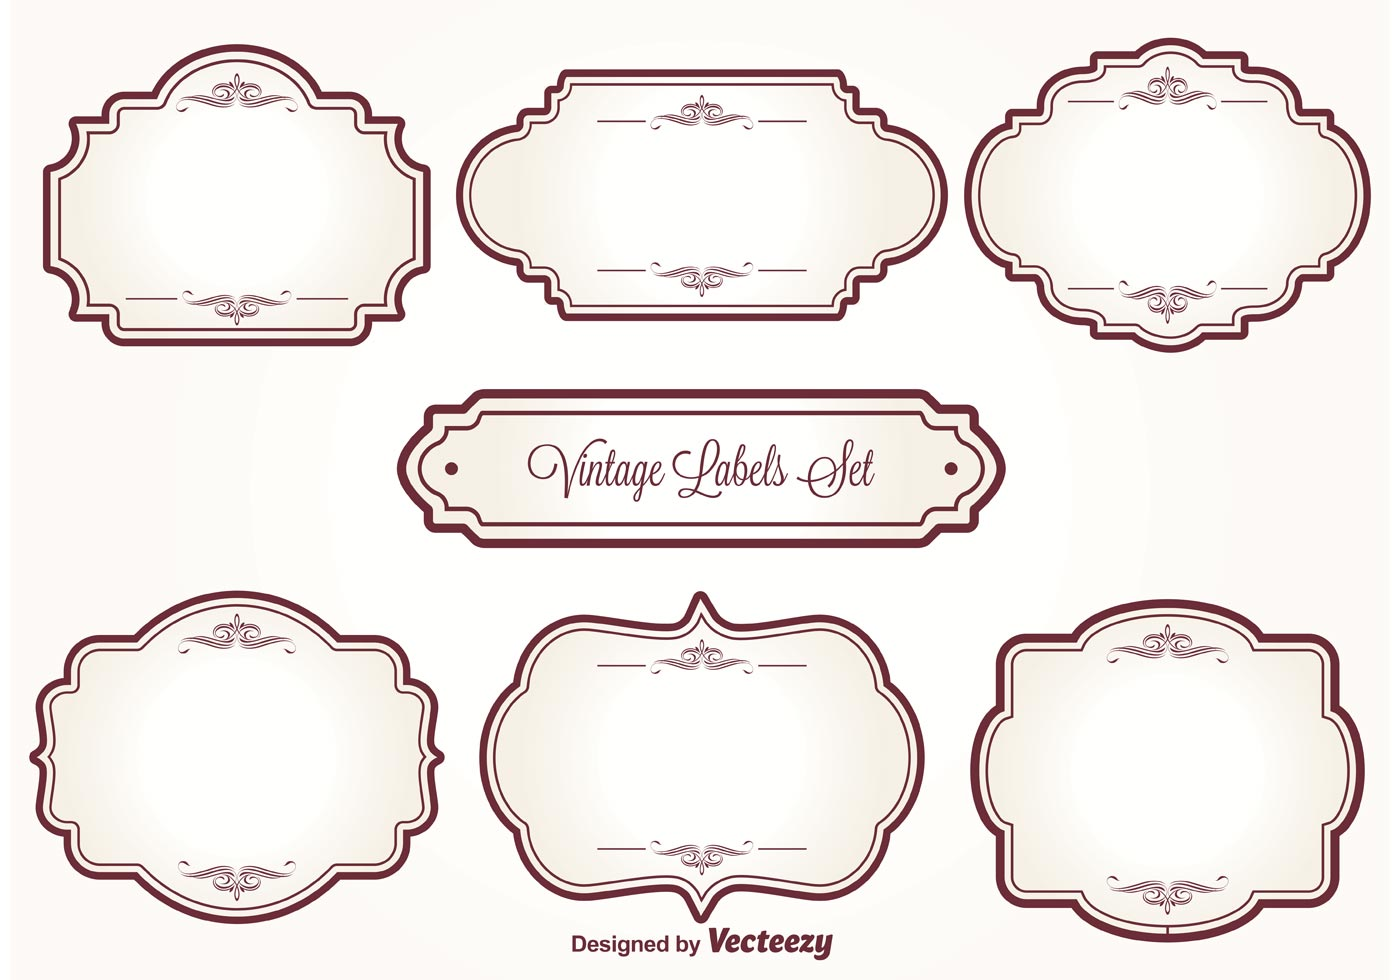 Vintage Label Set - Download Free Vectors, Clipart ...